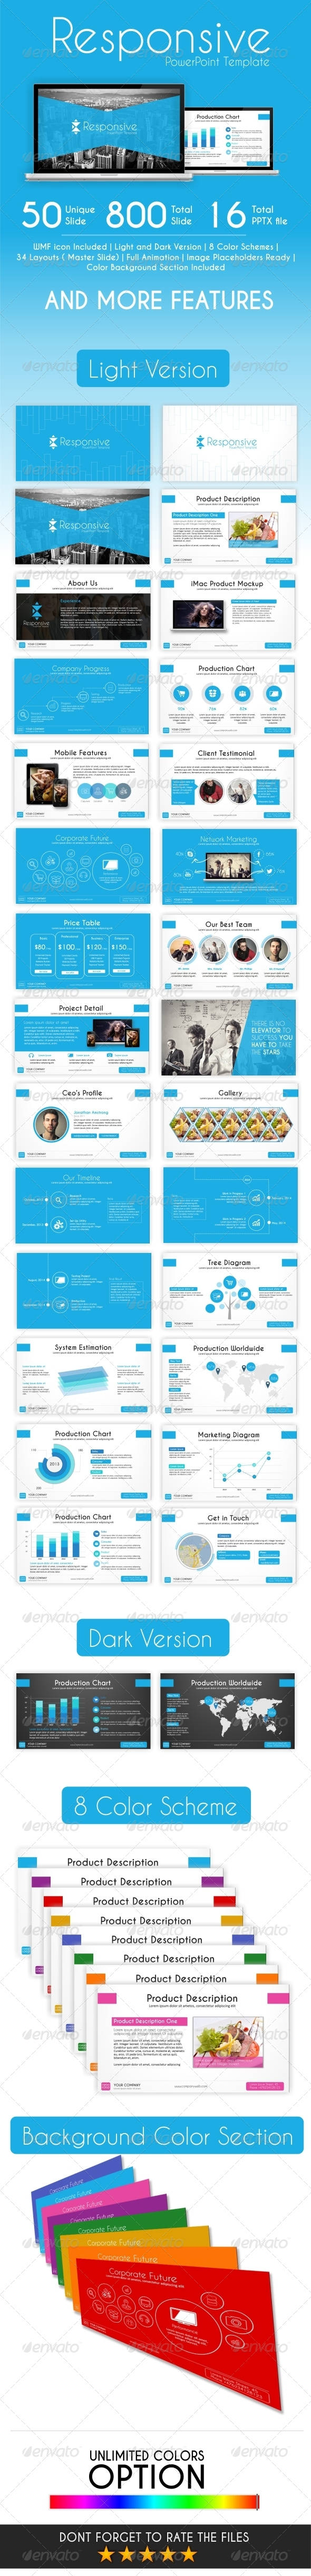 GraphicRiver Responsive PowerPoint Template 8417025